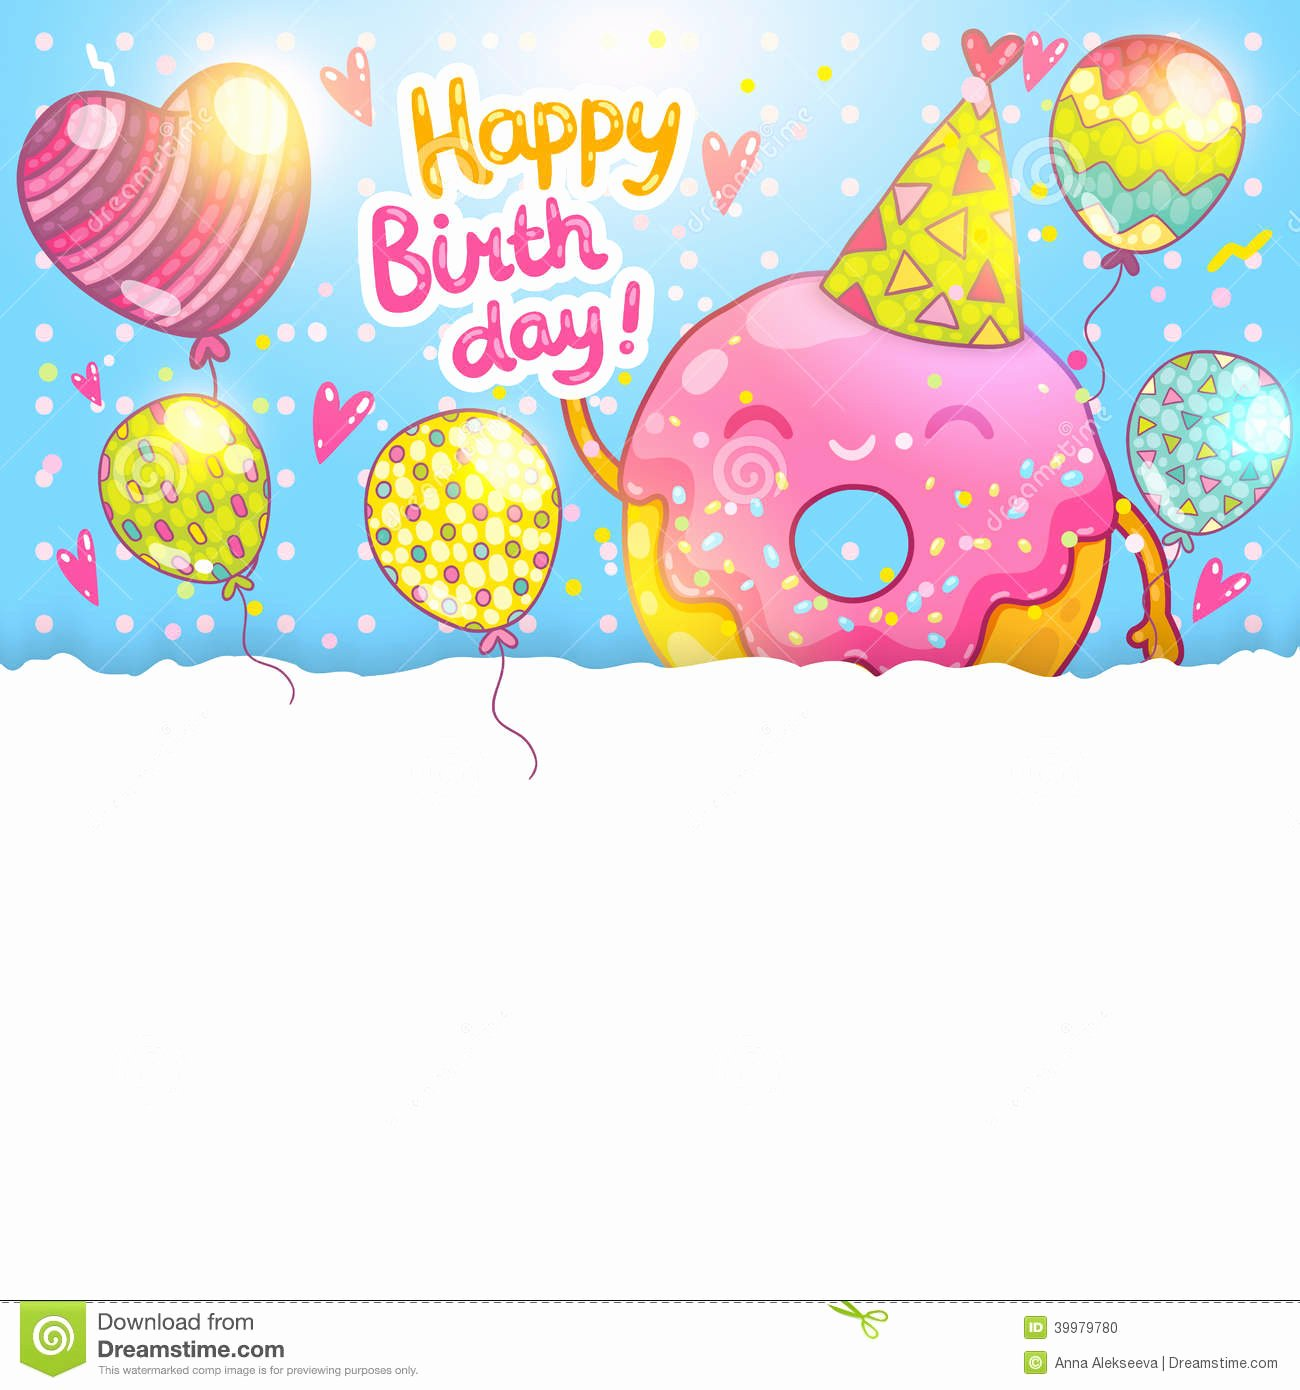 Happy Birthday Card Template Lovely Happy Birthday Card Background with Cute Donut Stock